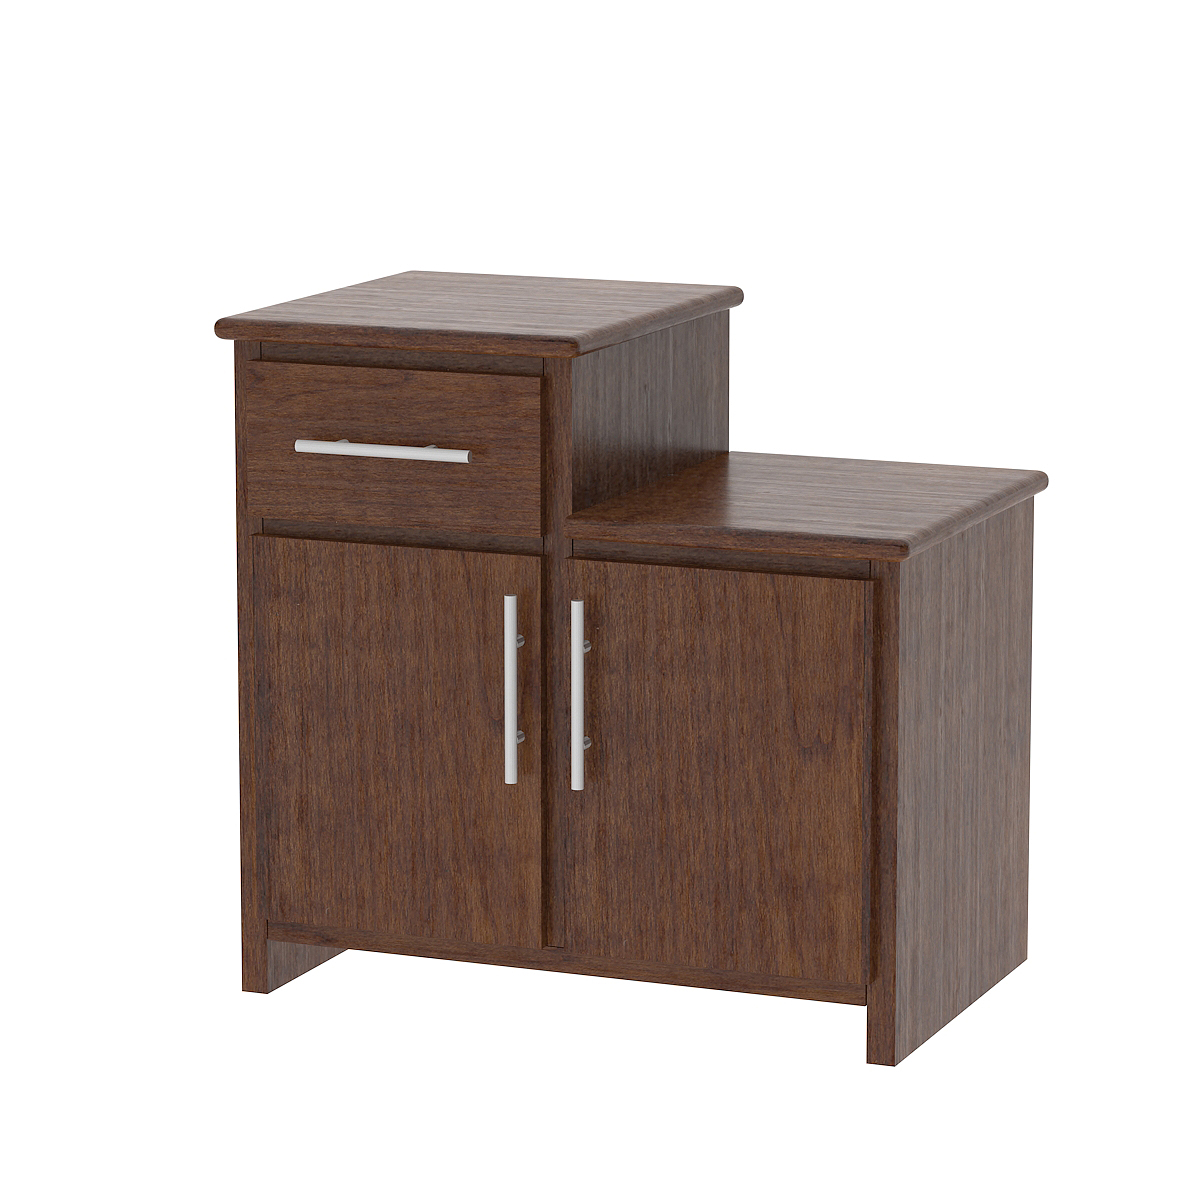 Waterfall wardrobe dresser solid wood dresser in the for Waterfall design nightstand